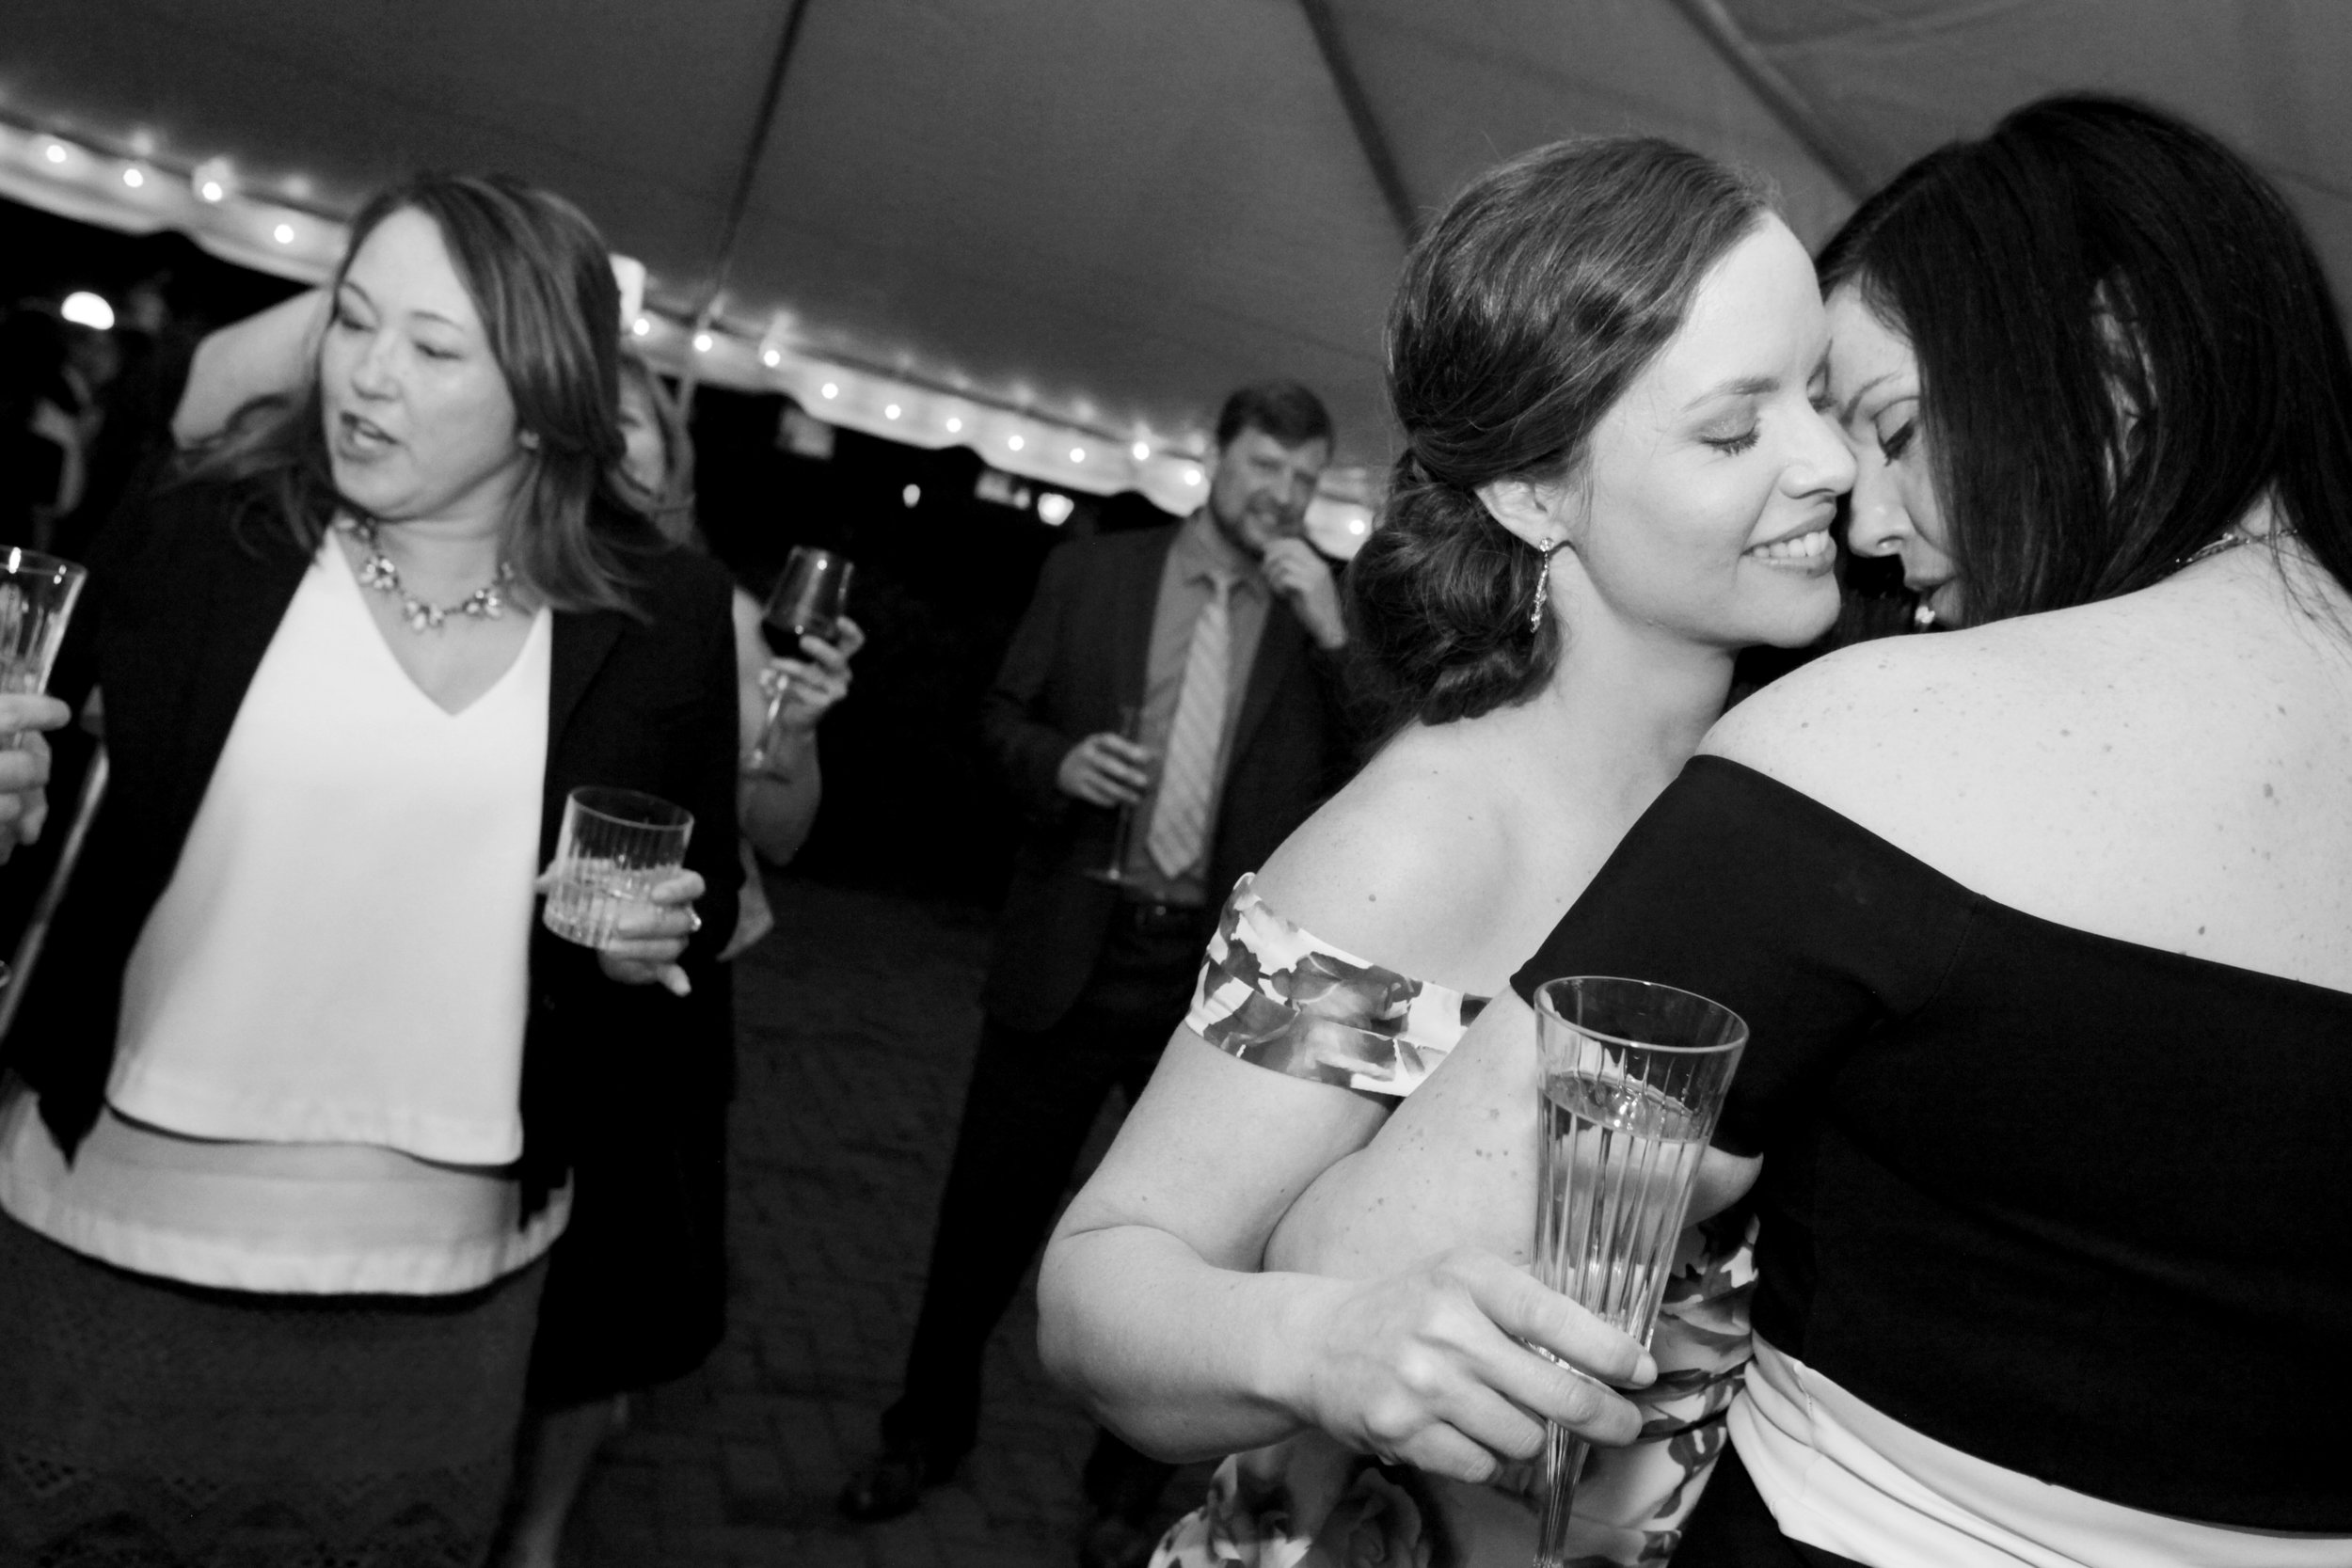 What is something that's changed in your community? I've got a pic of a wedding I shot, same sex, of how things have changed.